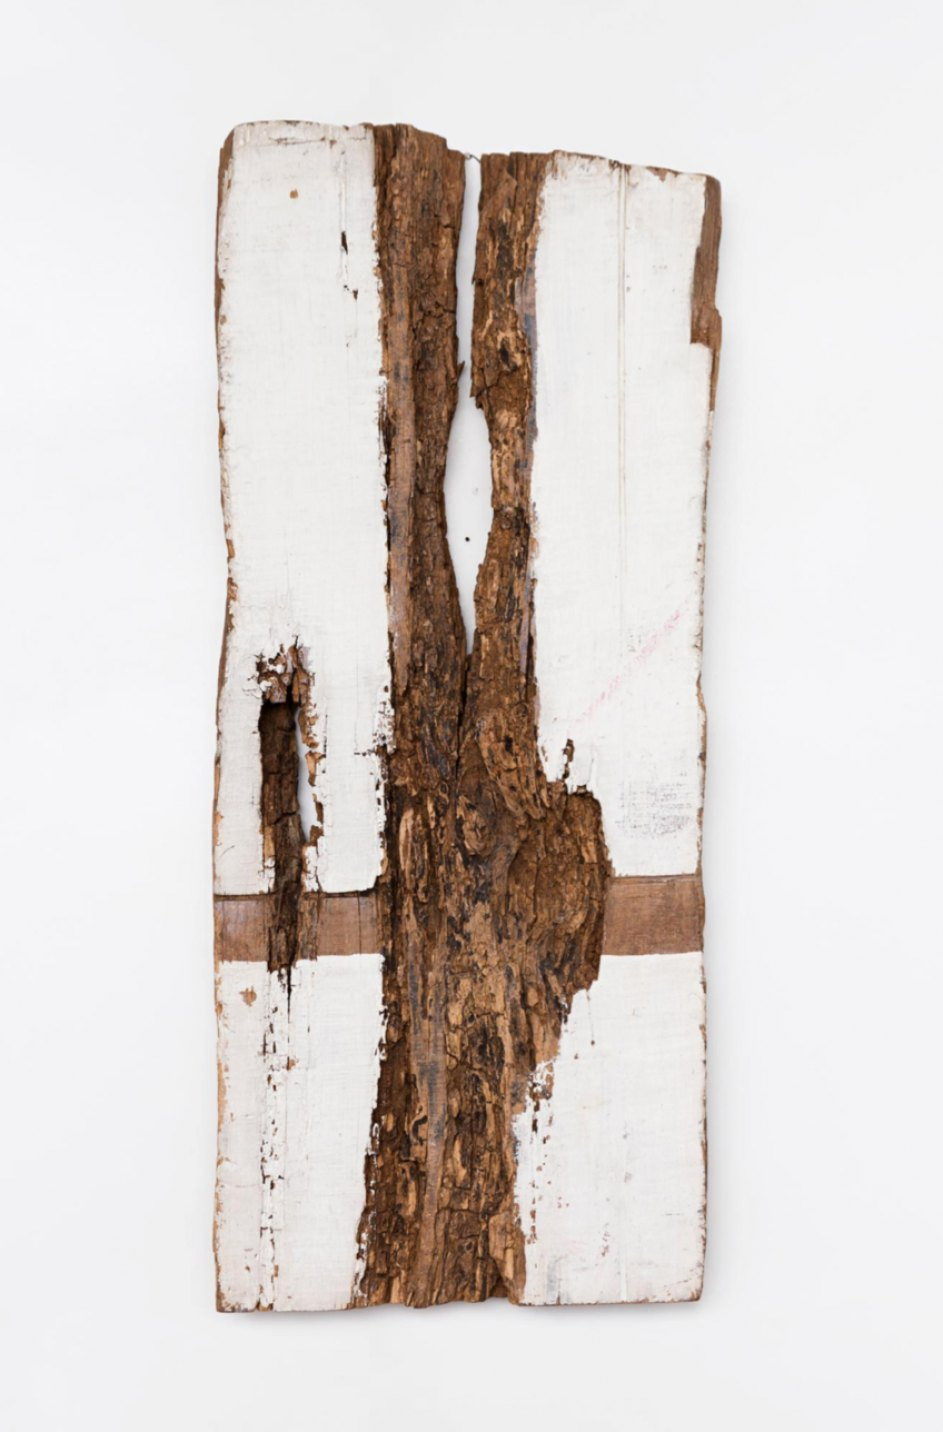 Celso Renato, <em>Untitled</em>, s/d, acrylic on wood, 75,5 × 31 × 7 cm - Mendes Wood DM